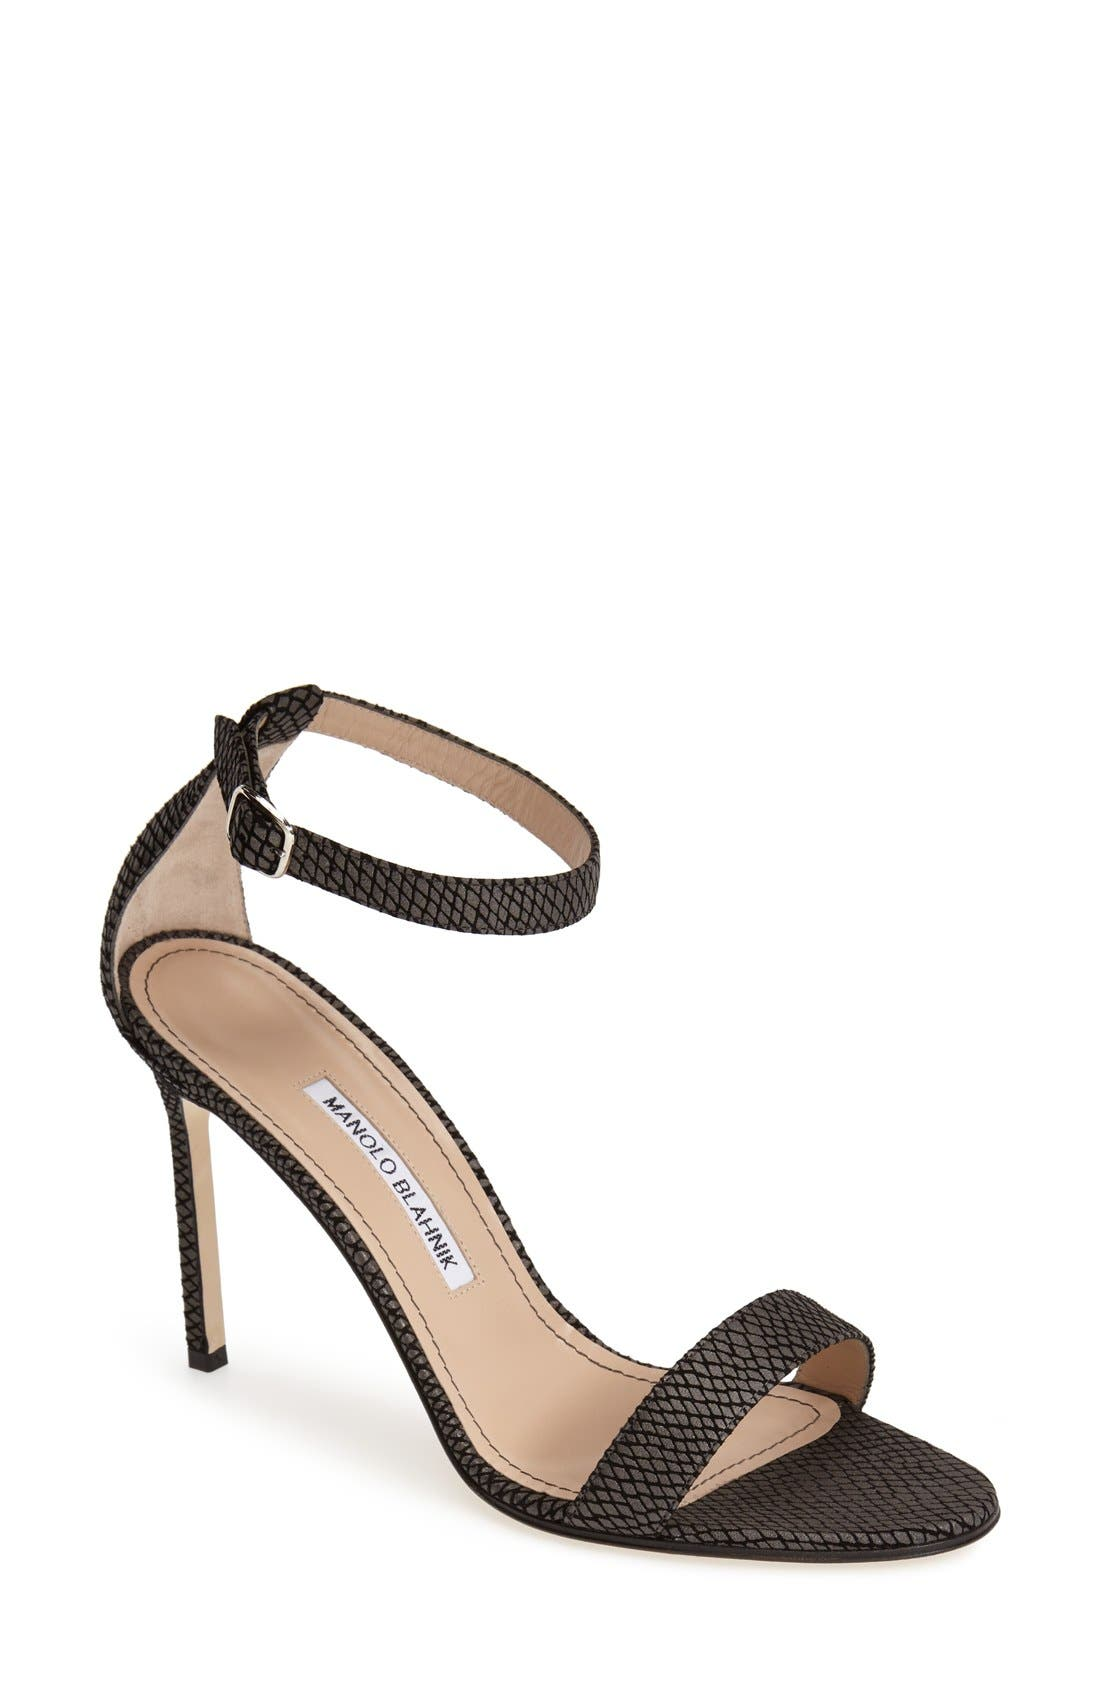 Alternate Image 1 Selected - Manolo Blahnik 'Chaos' Ankle Strap Pump (Women)